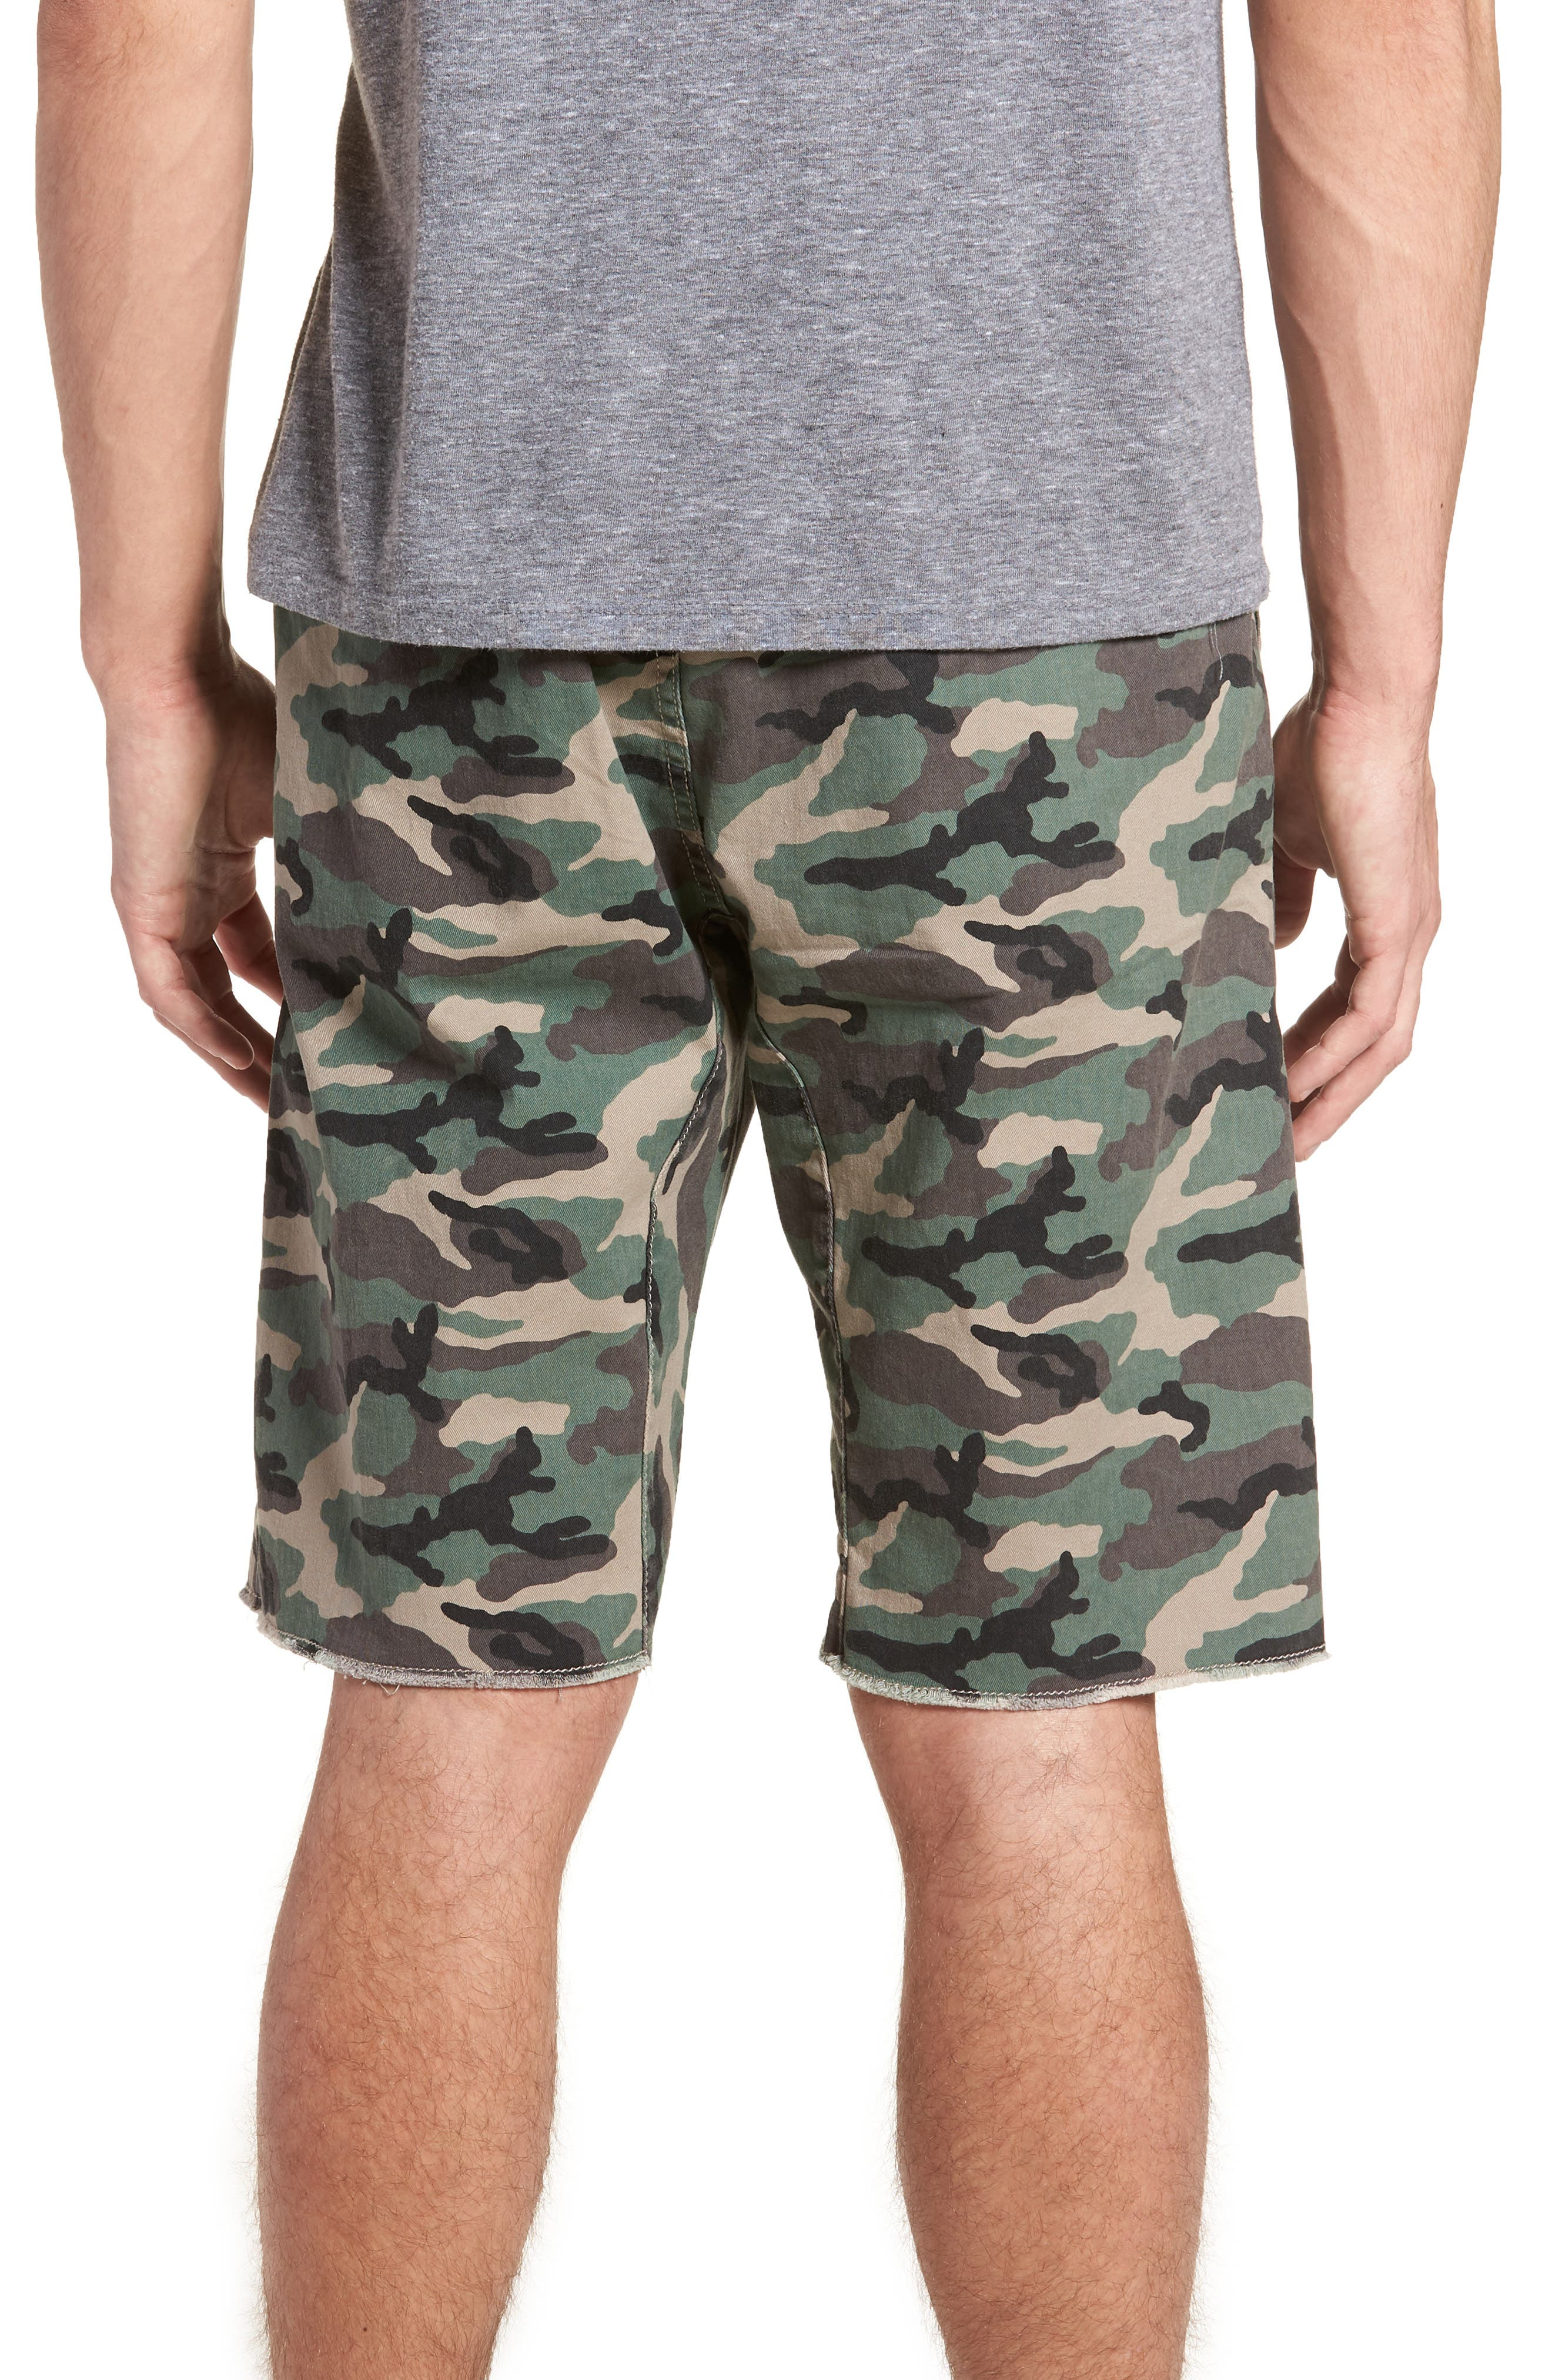 Camo Print Cutoff Twill Shorts,                             Alternate thumbnail 2, color,                             210